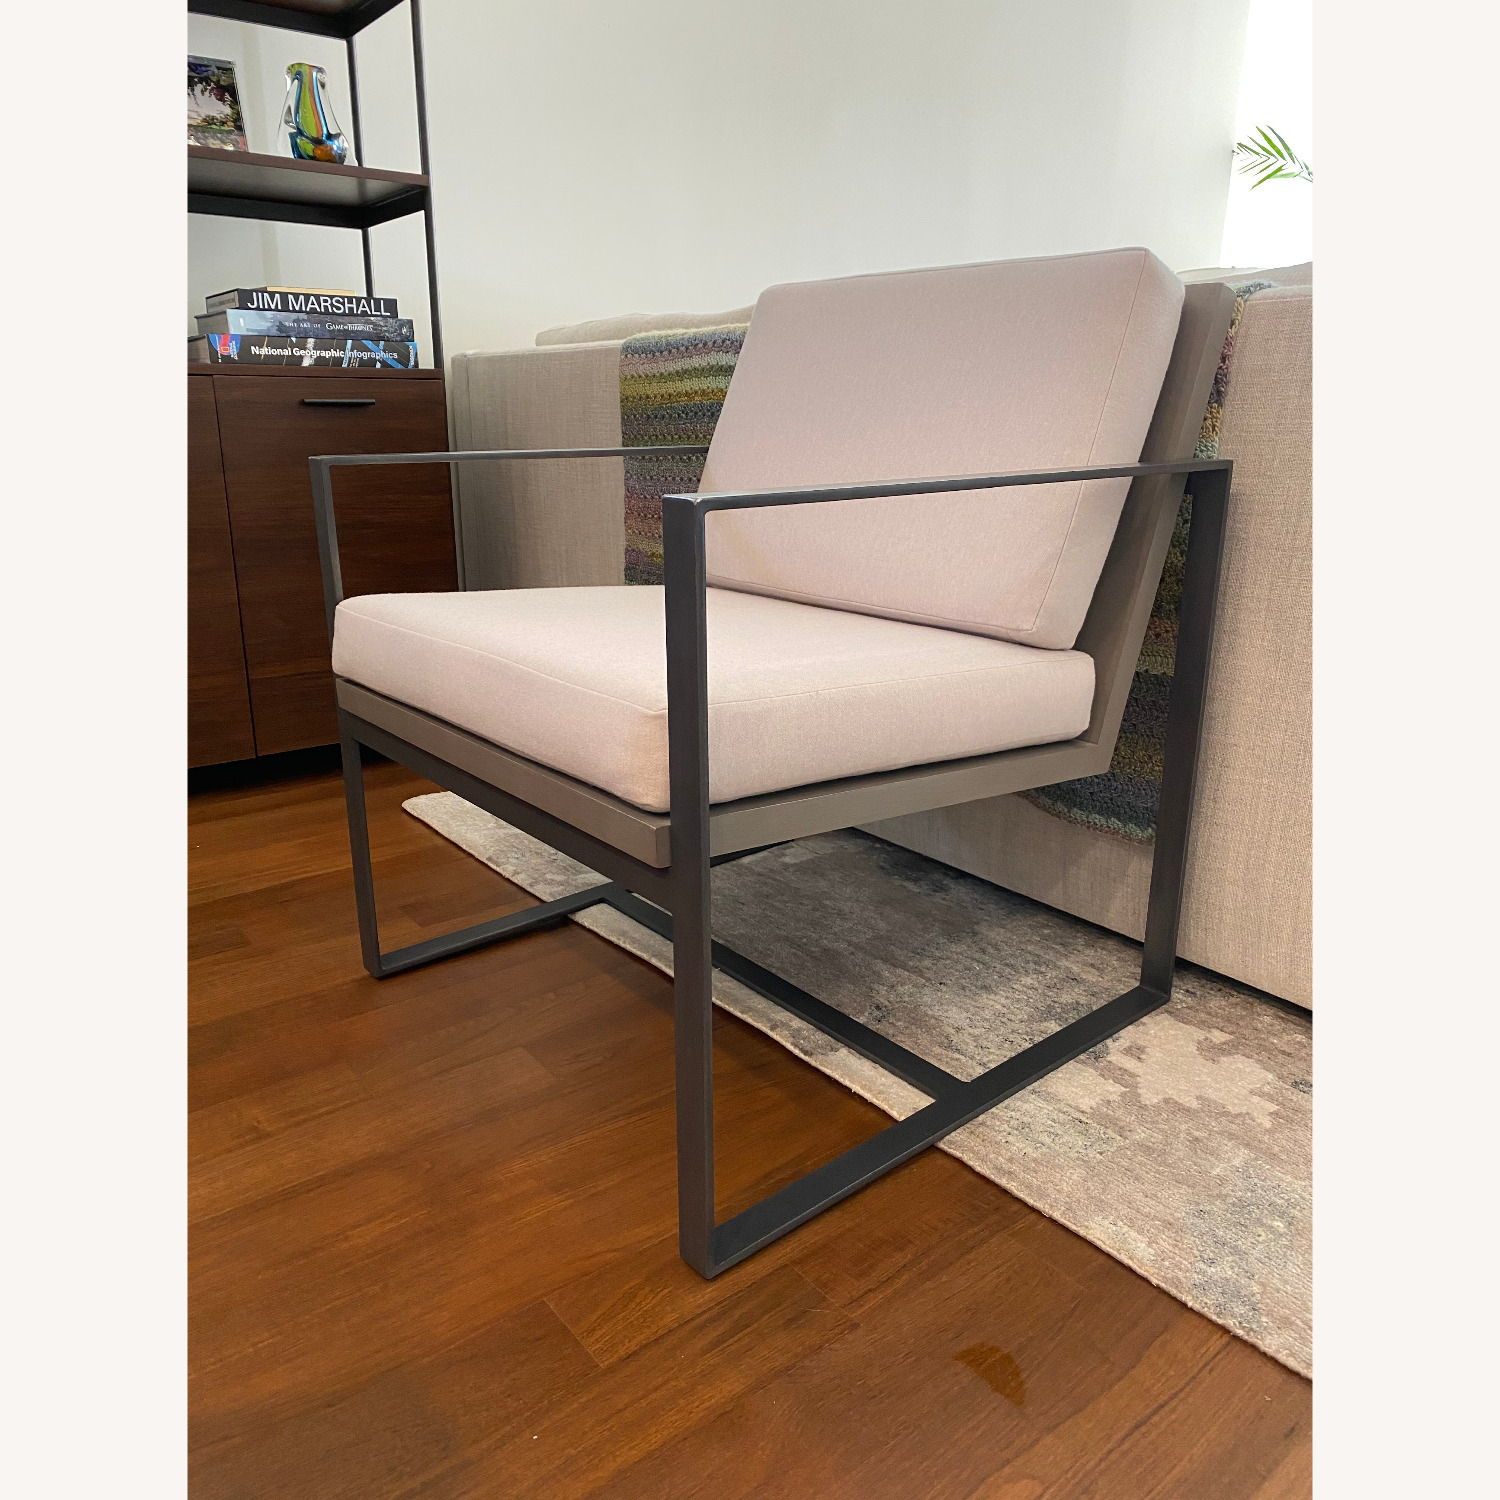 Restoration Hardware Occasional Chair - image-1